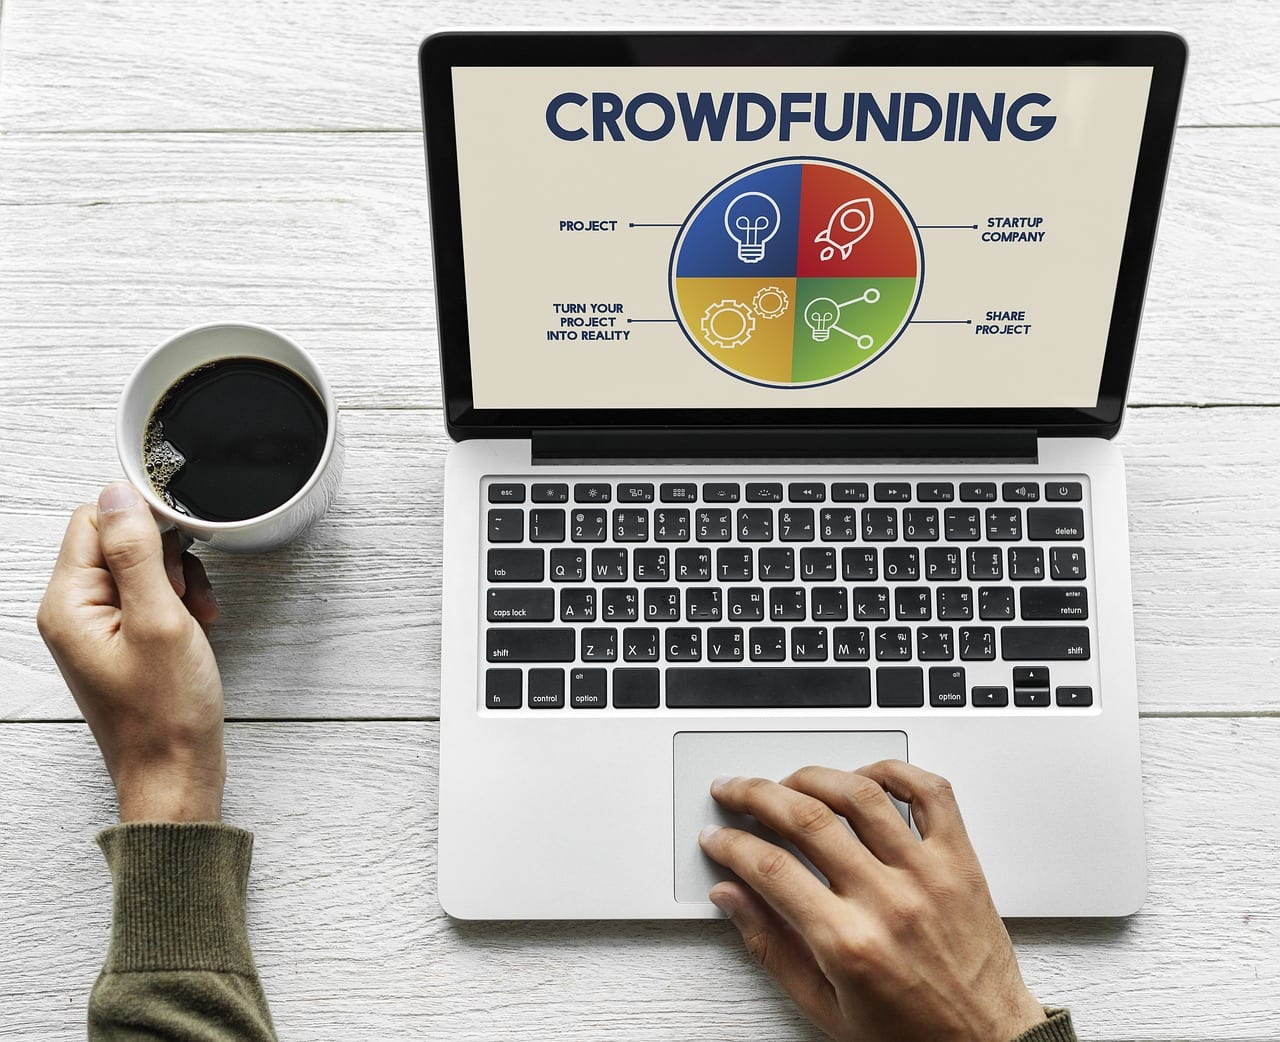 StrategyDriven Online Marketing and Website Development Article |Crowdfunding|Essential Tips To Boost Your Crowdfunding Strategy